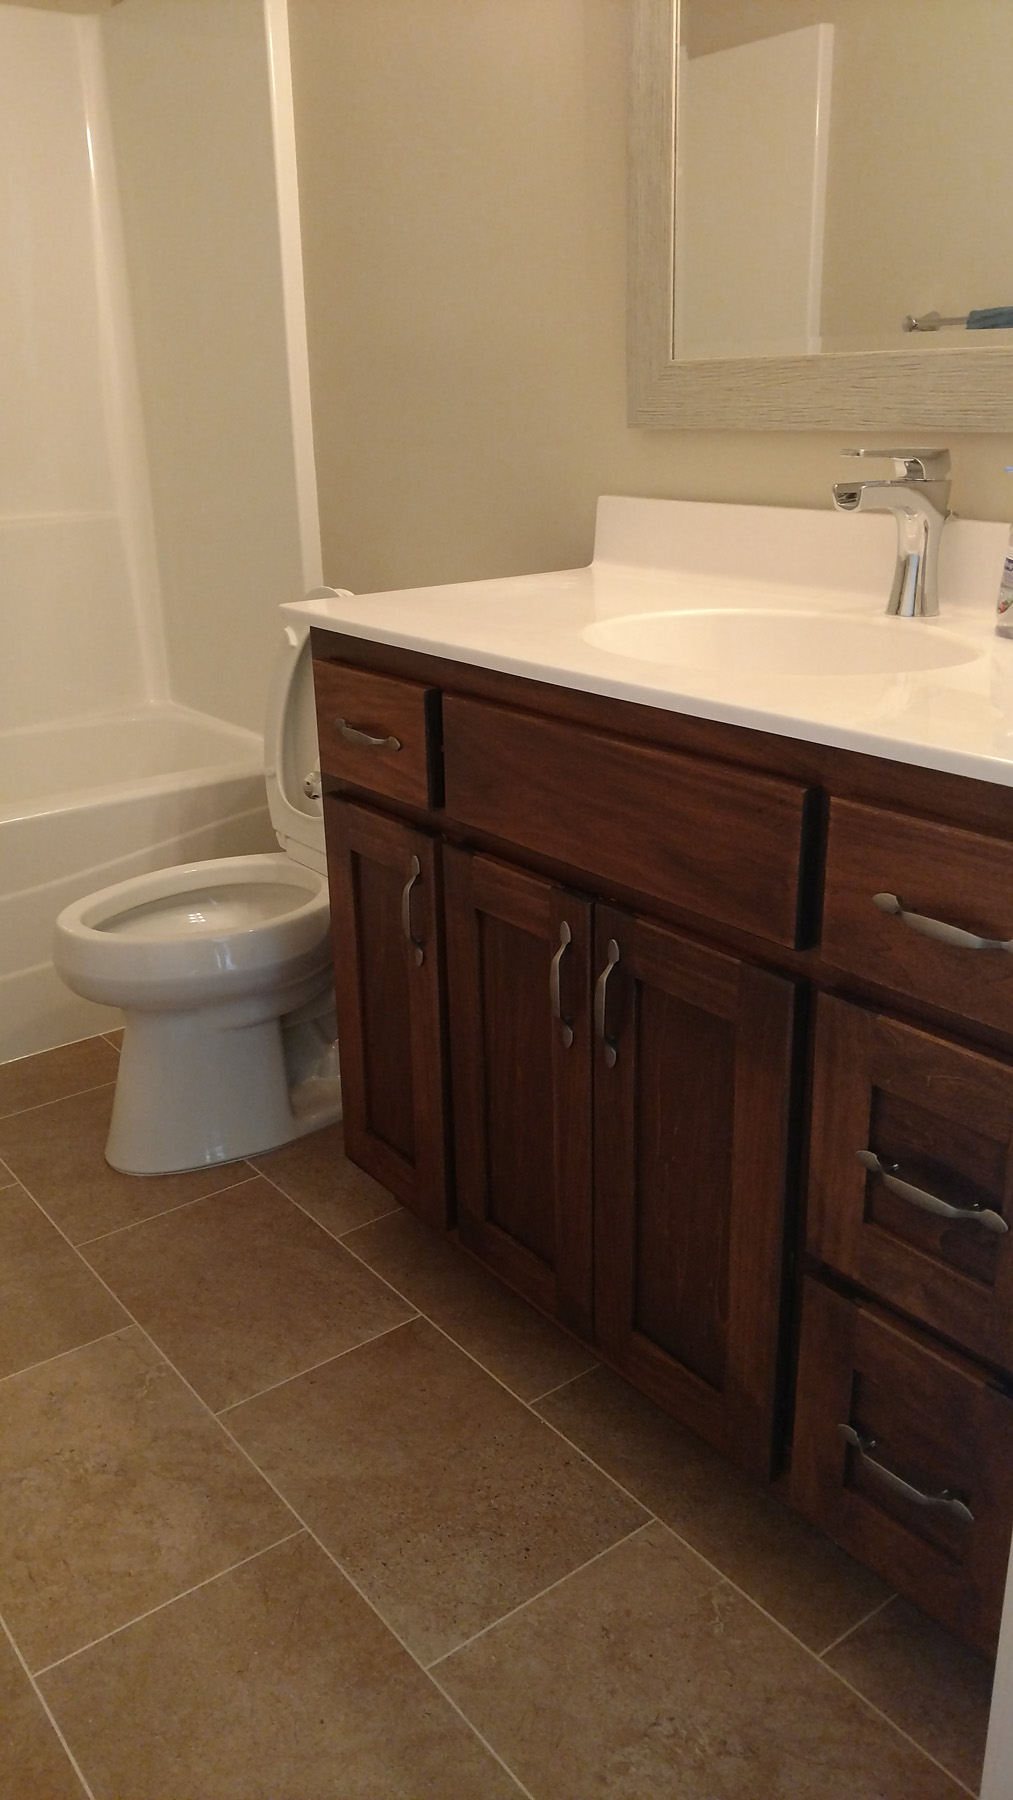 Bathroom with Knotty Alder Vanity Cabinets